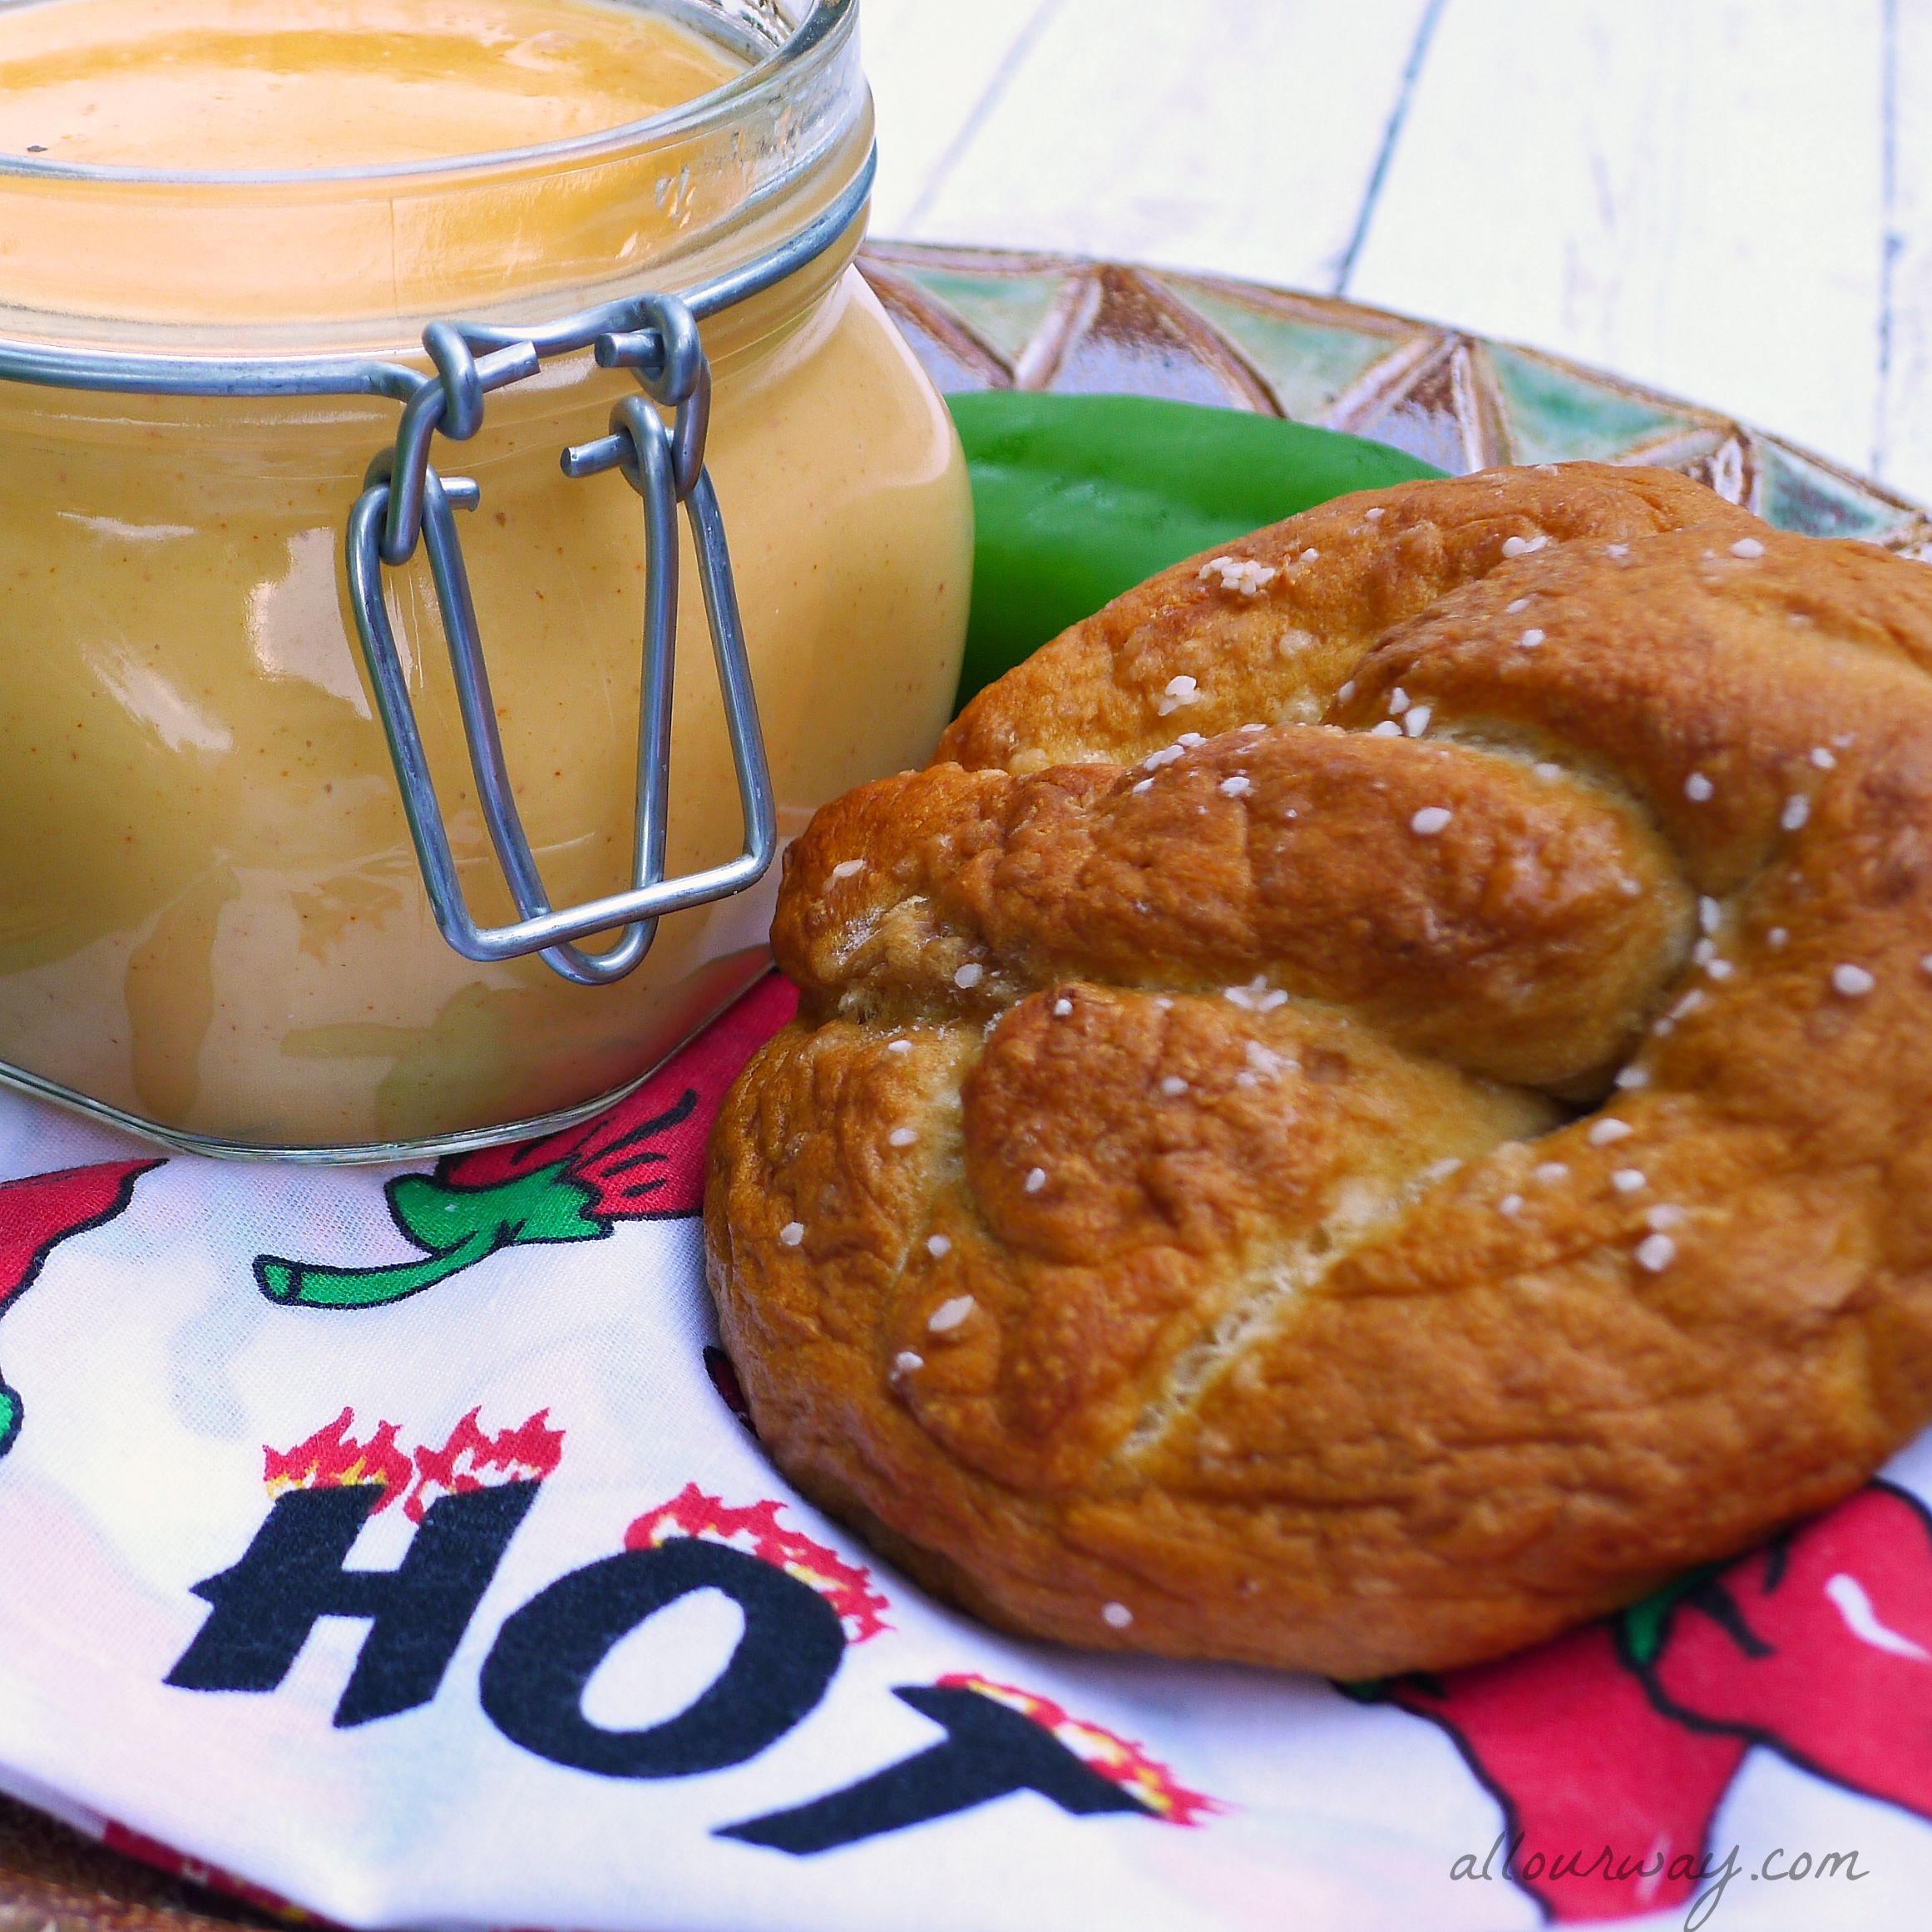 Soft Pretzels served with Spicy Cheese Sauce @allourway.com